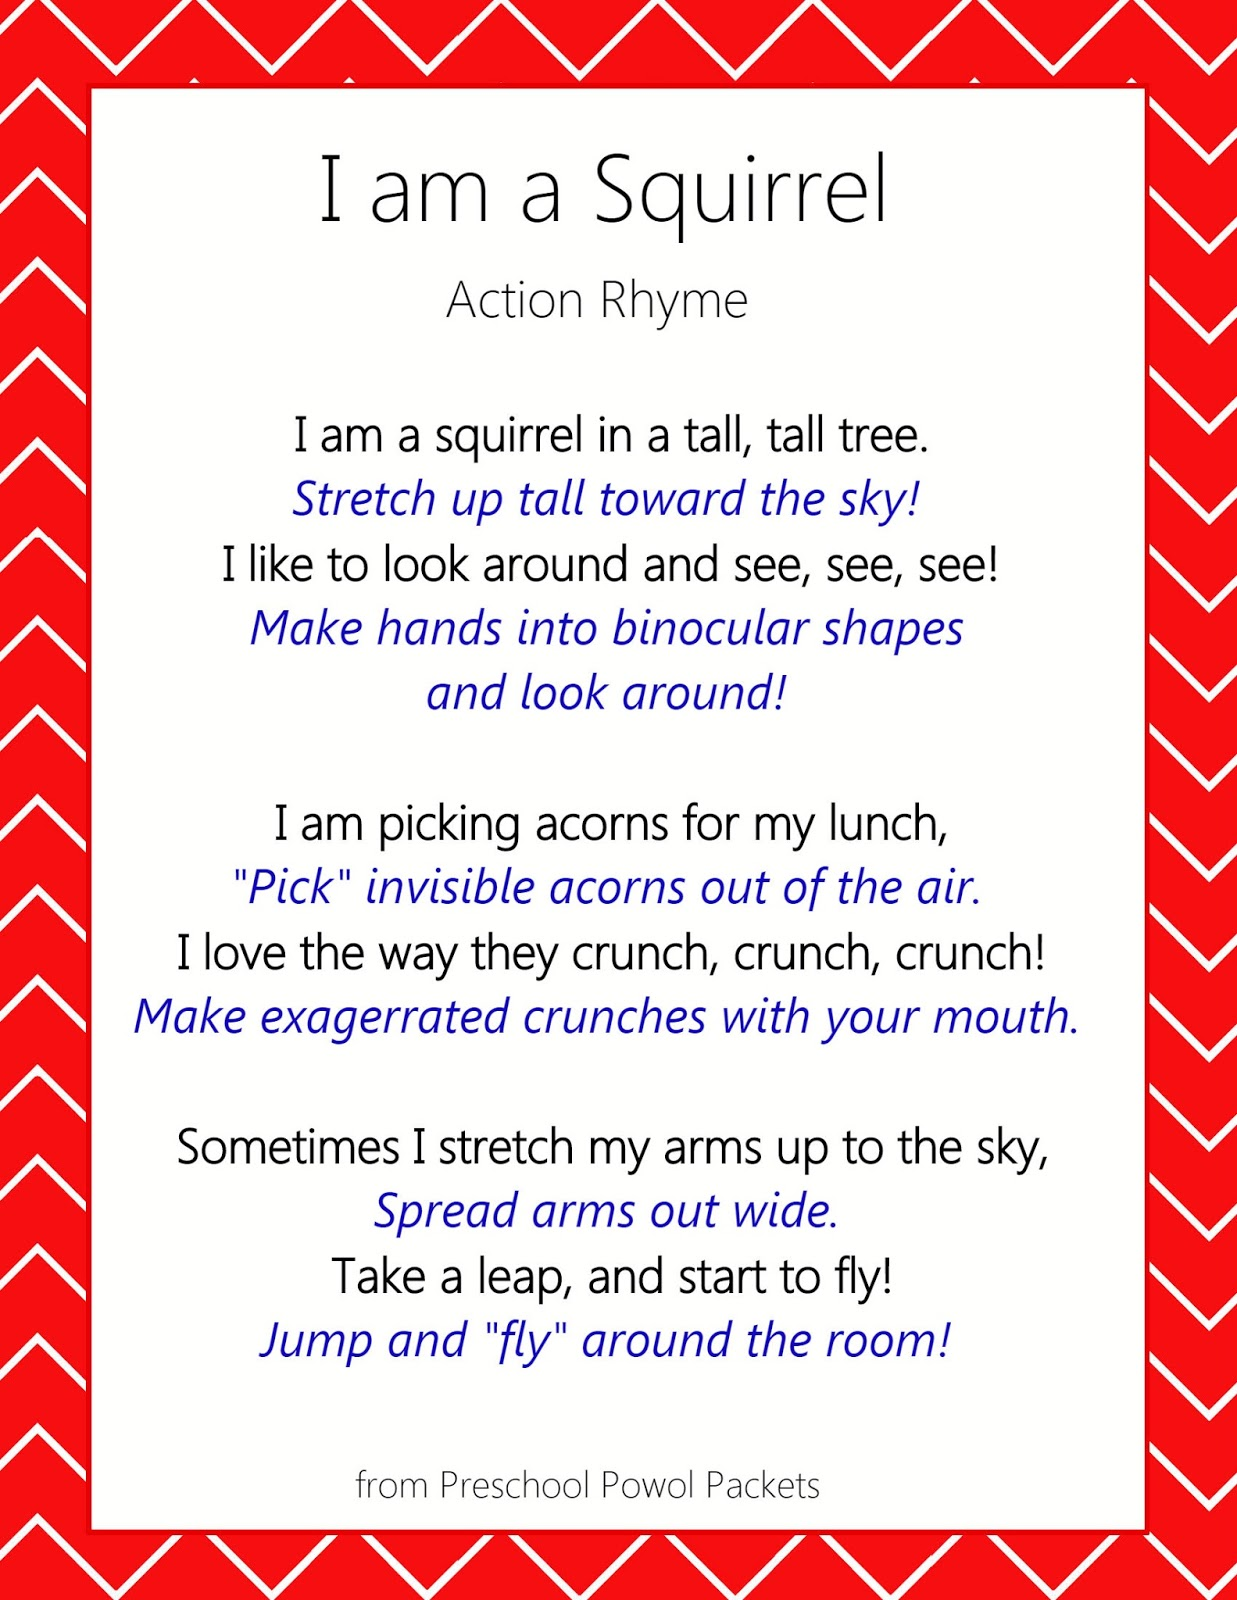 squirrel action rhyme rhymes for kids preschool powol packets